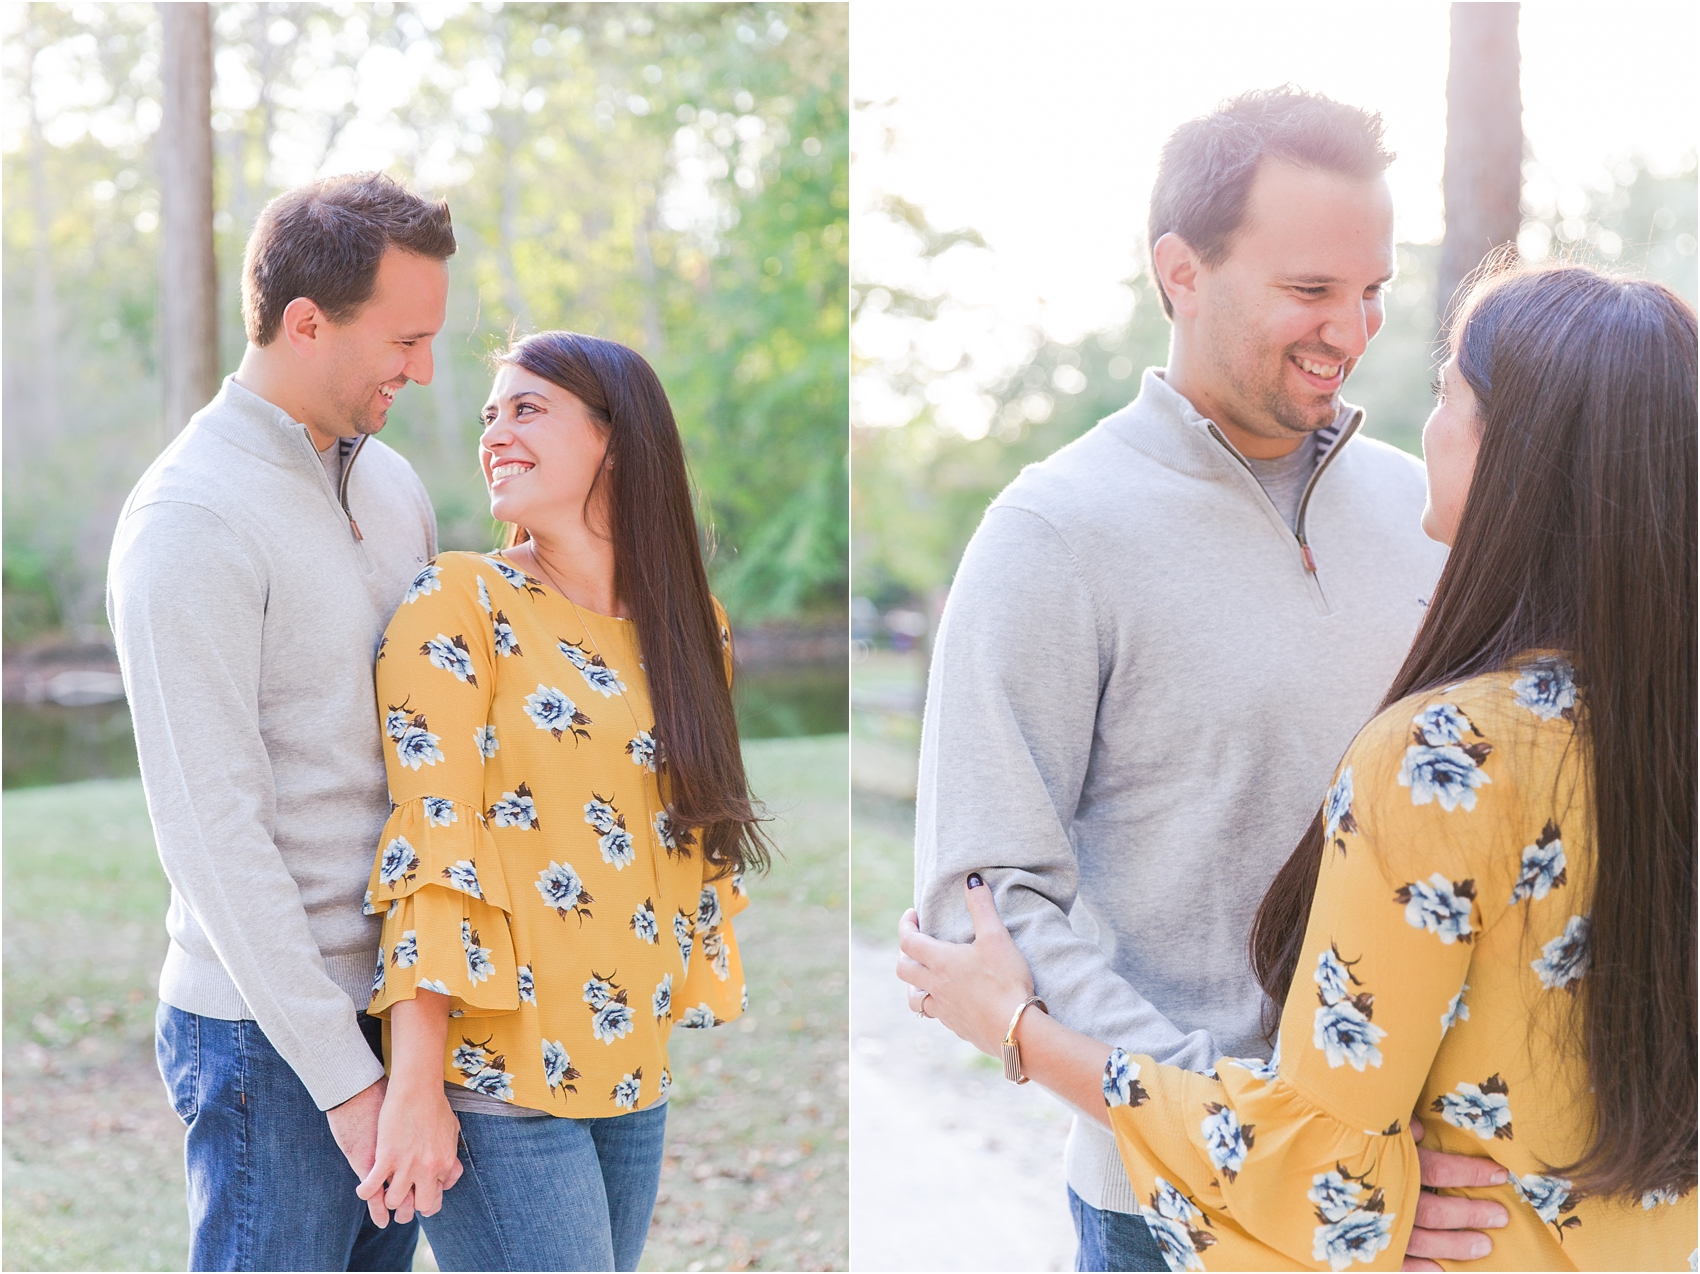 relaxed-autumn-engagement-photos-at-hudson-mills-metropark-in-dexter-mi-by-courtney-carolyn-photography_0020.jpg